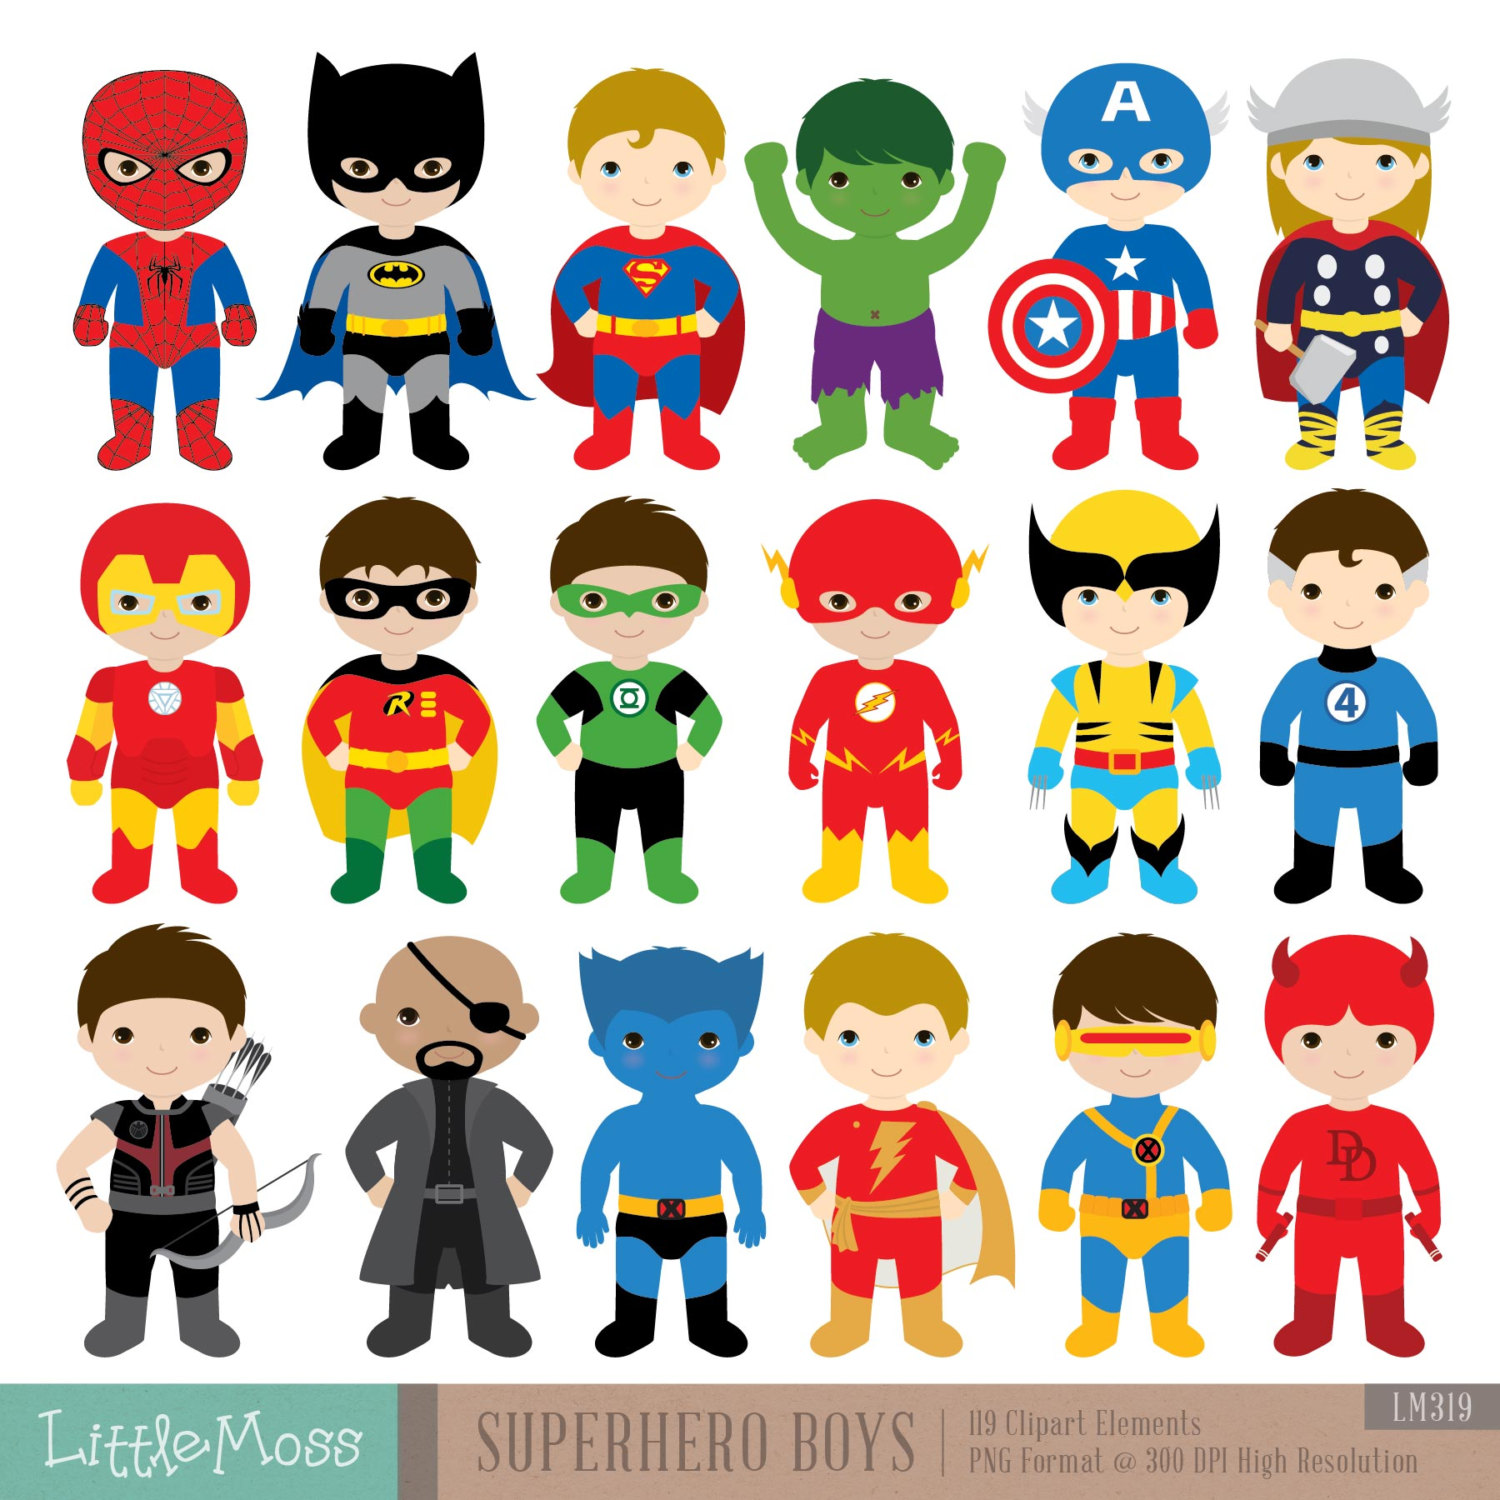 vector royalty free download Free avengers cliparts download. Thor clipart cartoon character